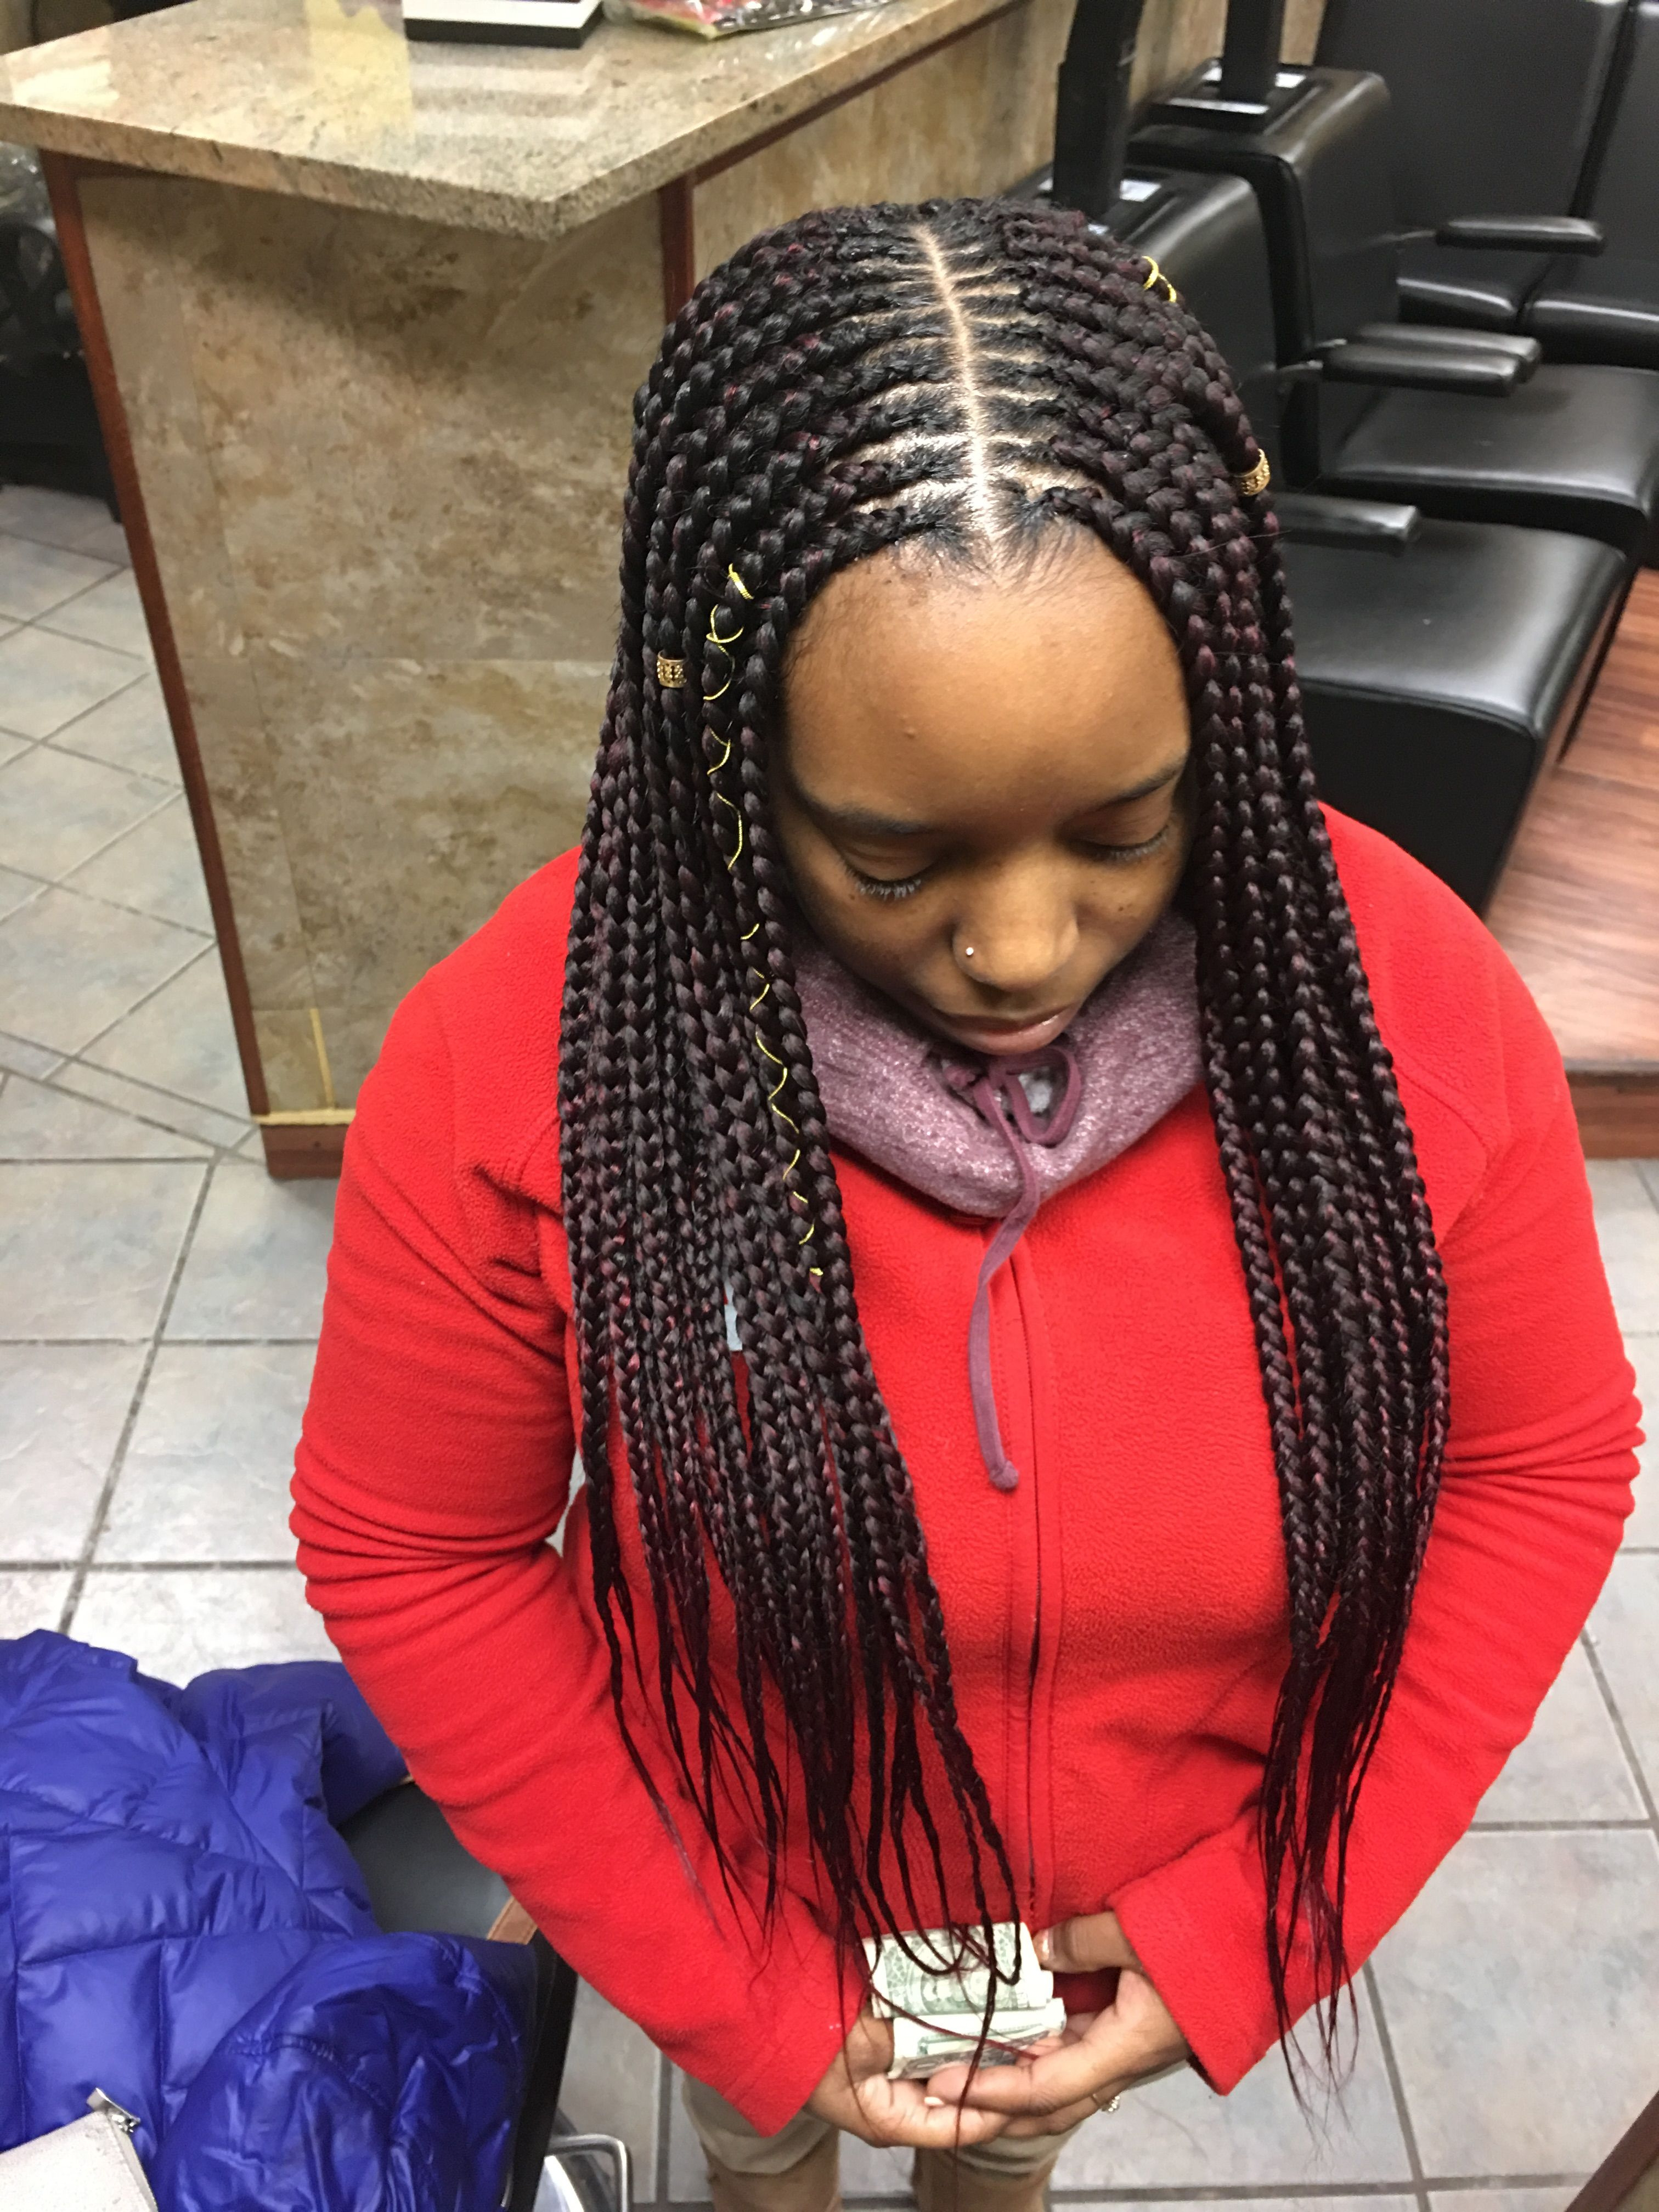 Hairstyles : Chic Braided Bob Hairstyle Extraordinary Small Regarding Most Up To Date Center Parted Bob Braid Hairstyles (View 7 of 20)